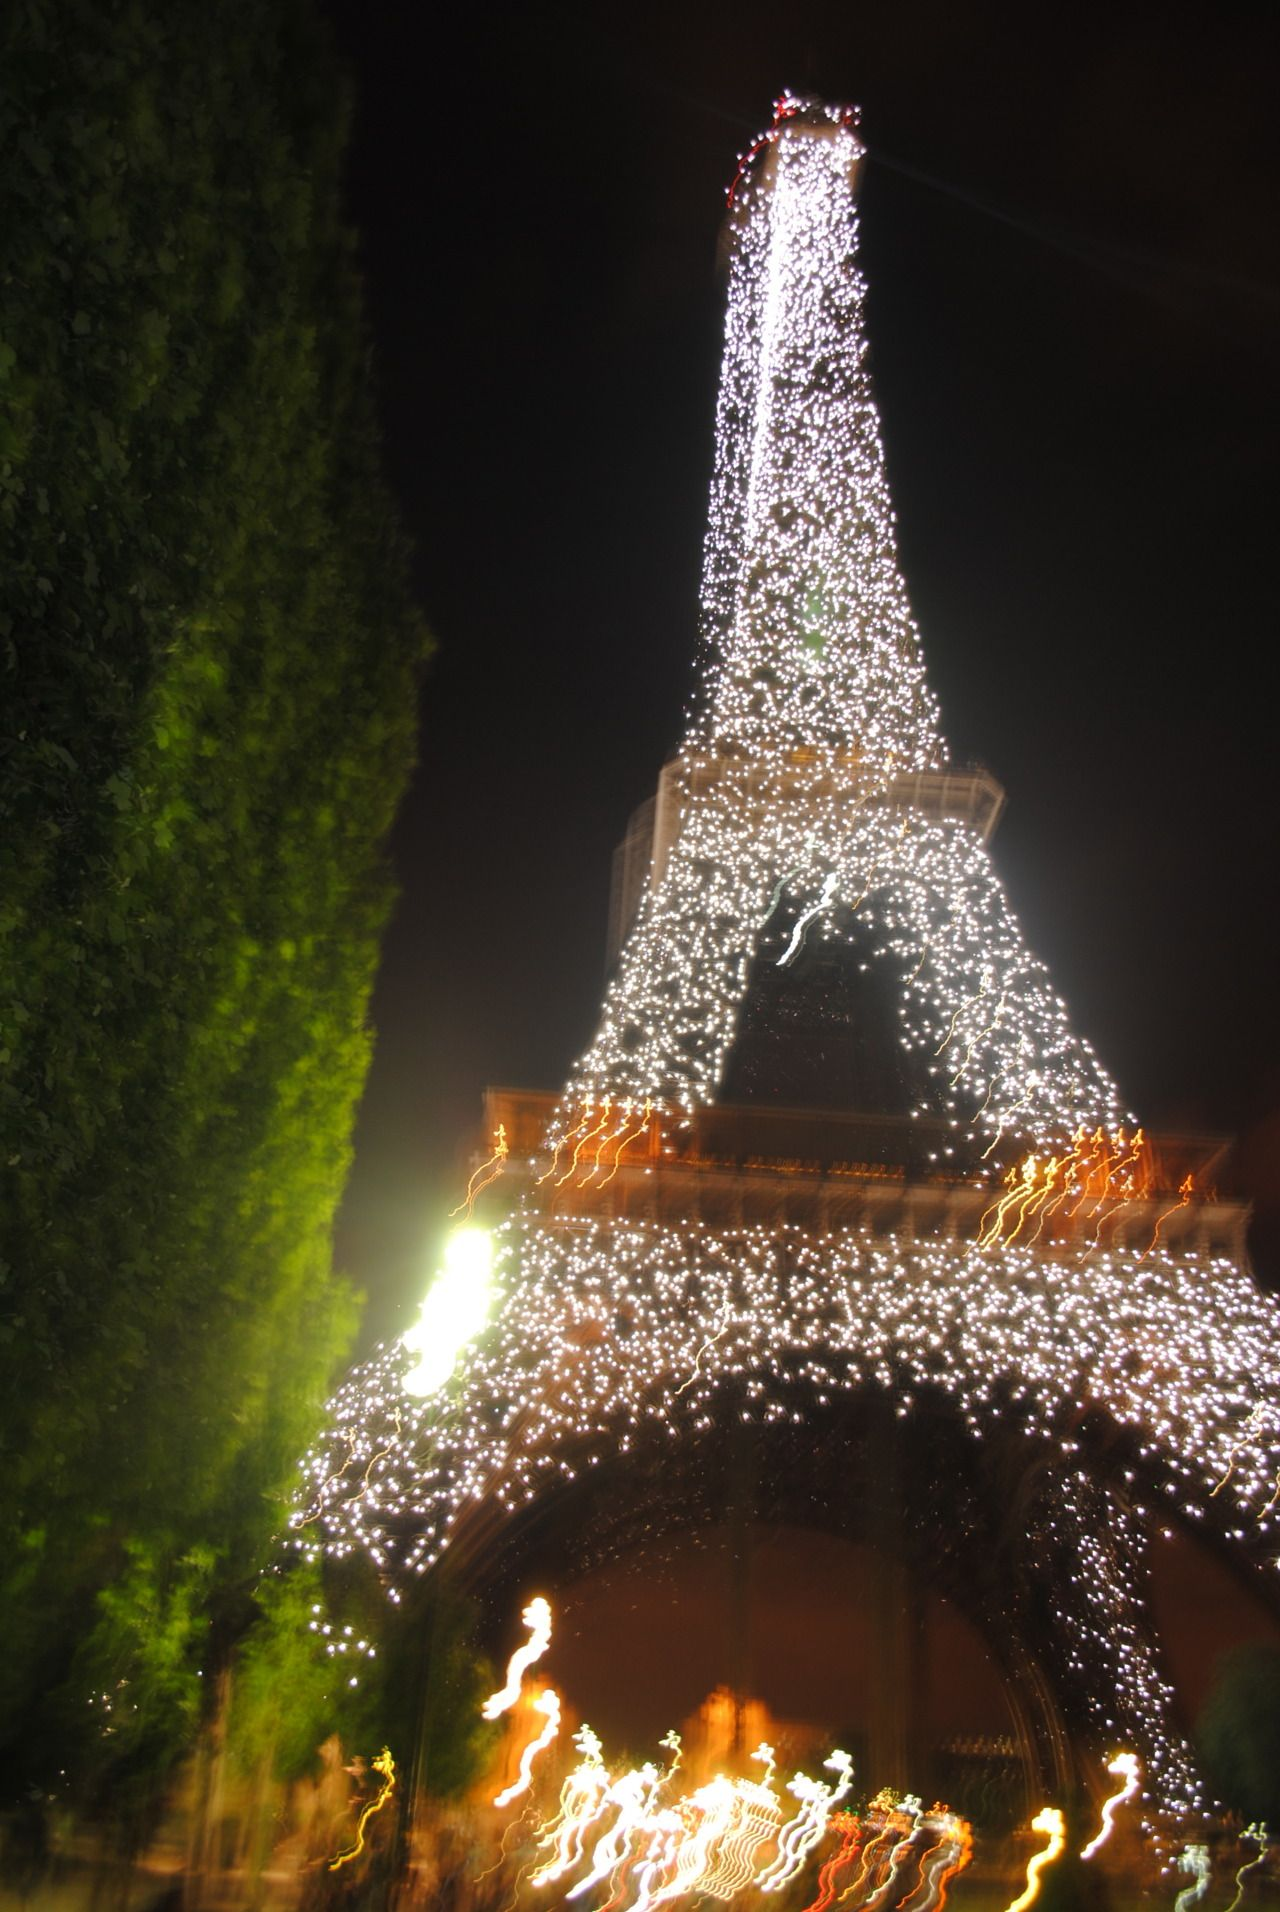 At 10 pm the eiffel tower light show begins, and it is easily the ...